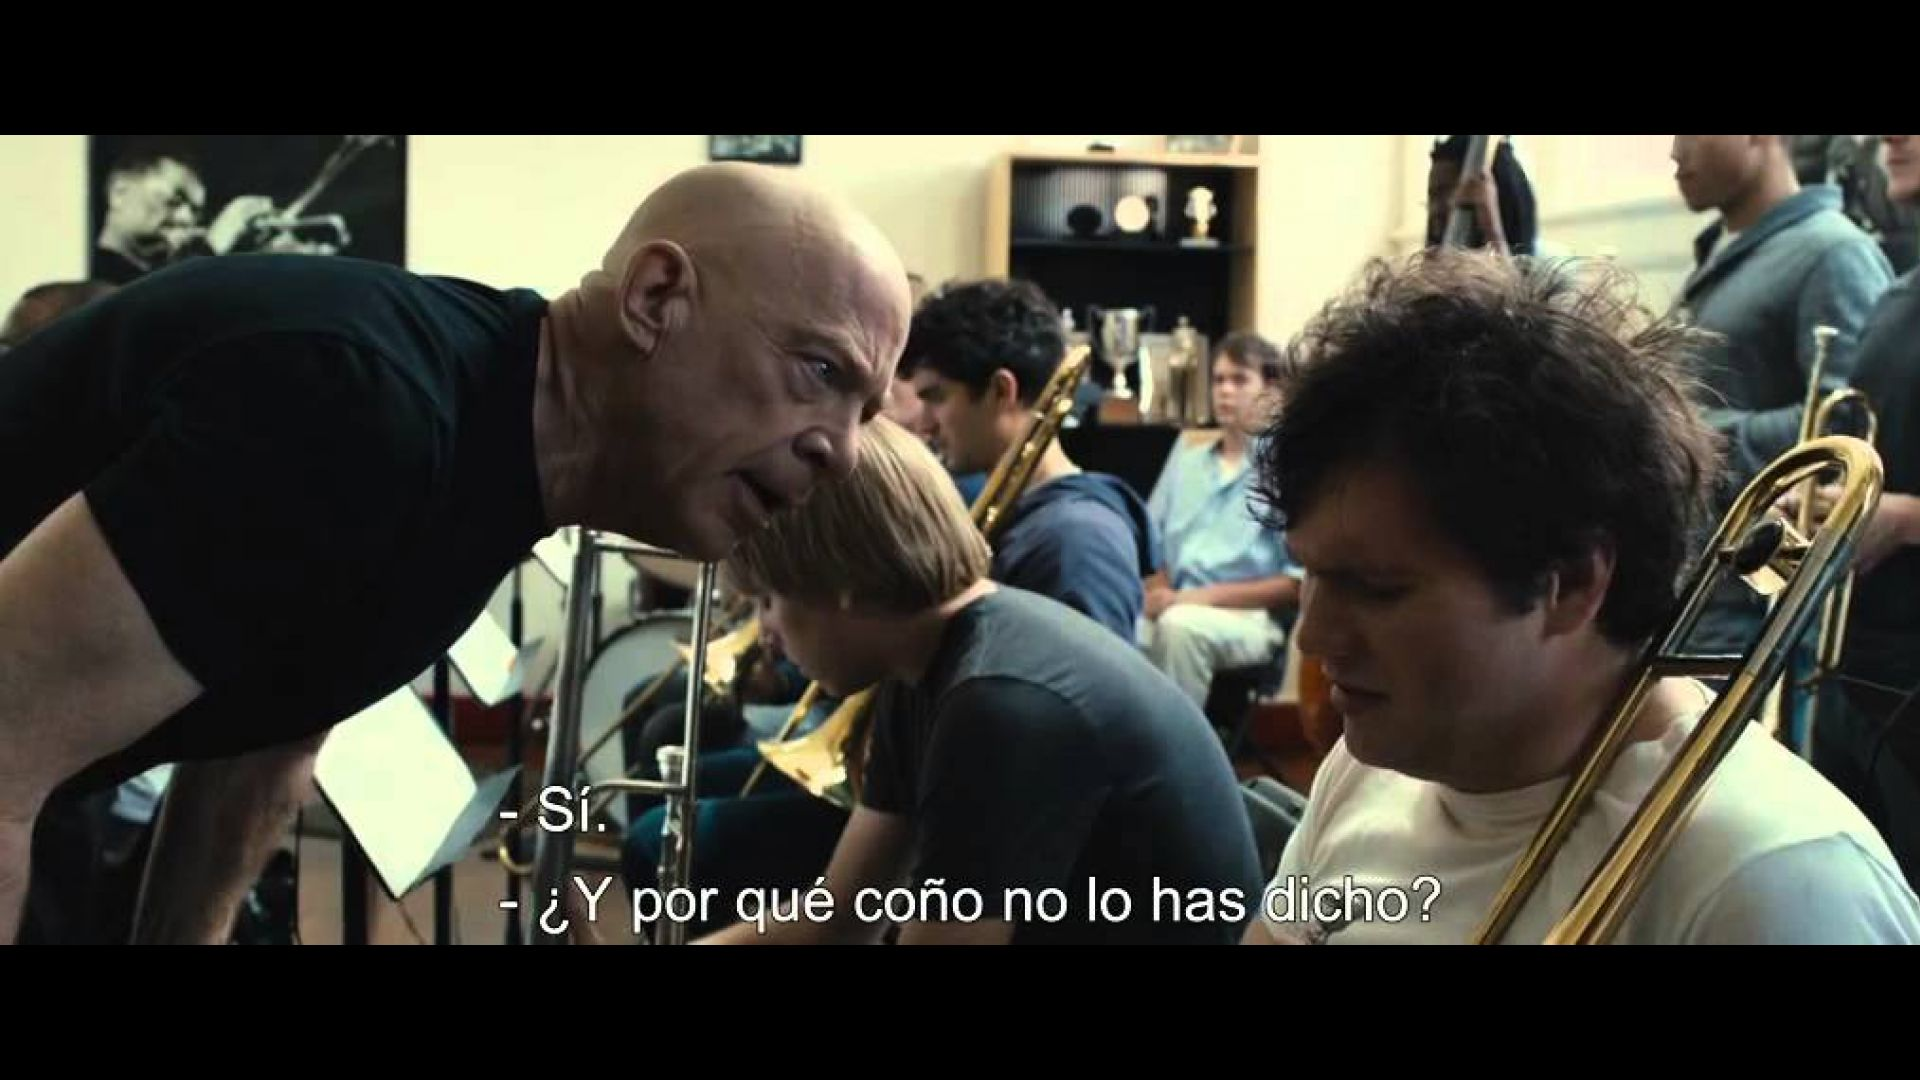 Watch Original 'Whiplash' Short Film